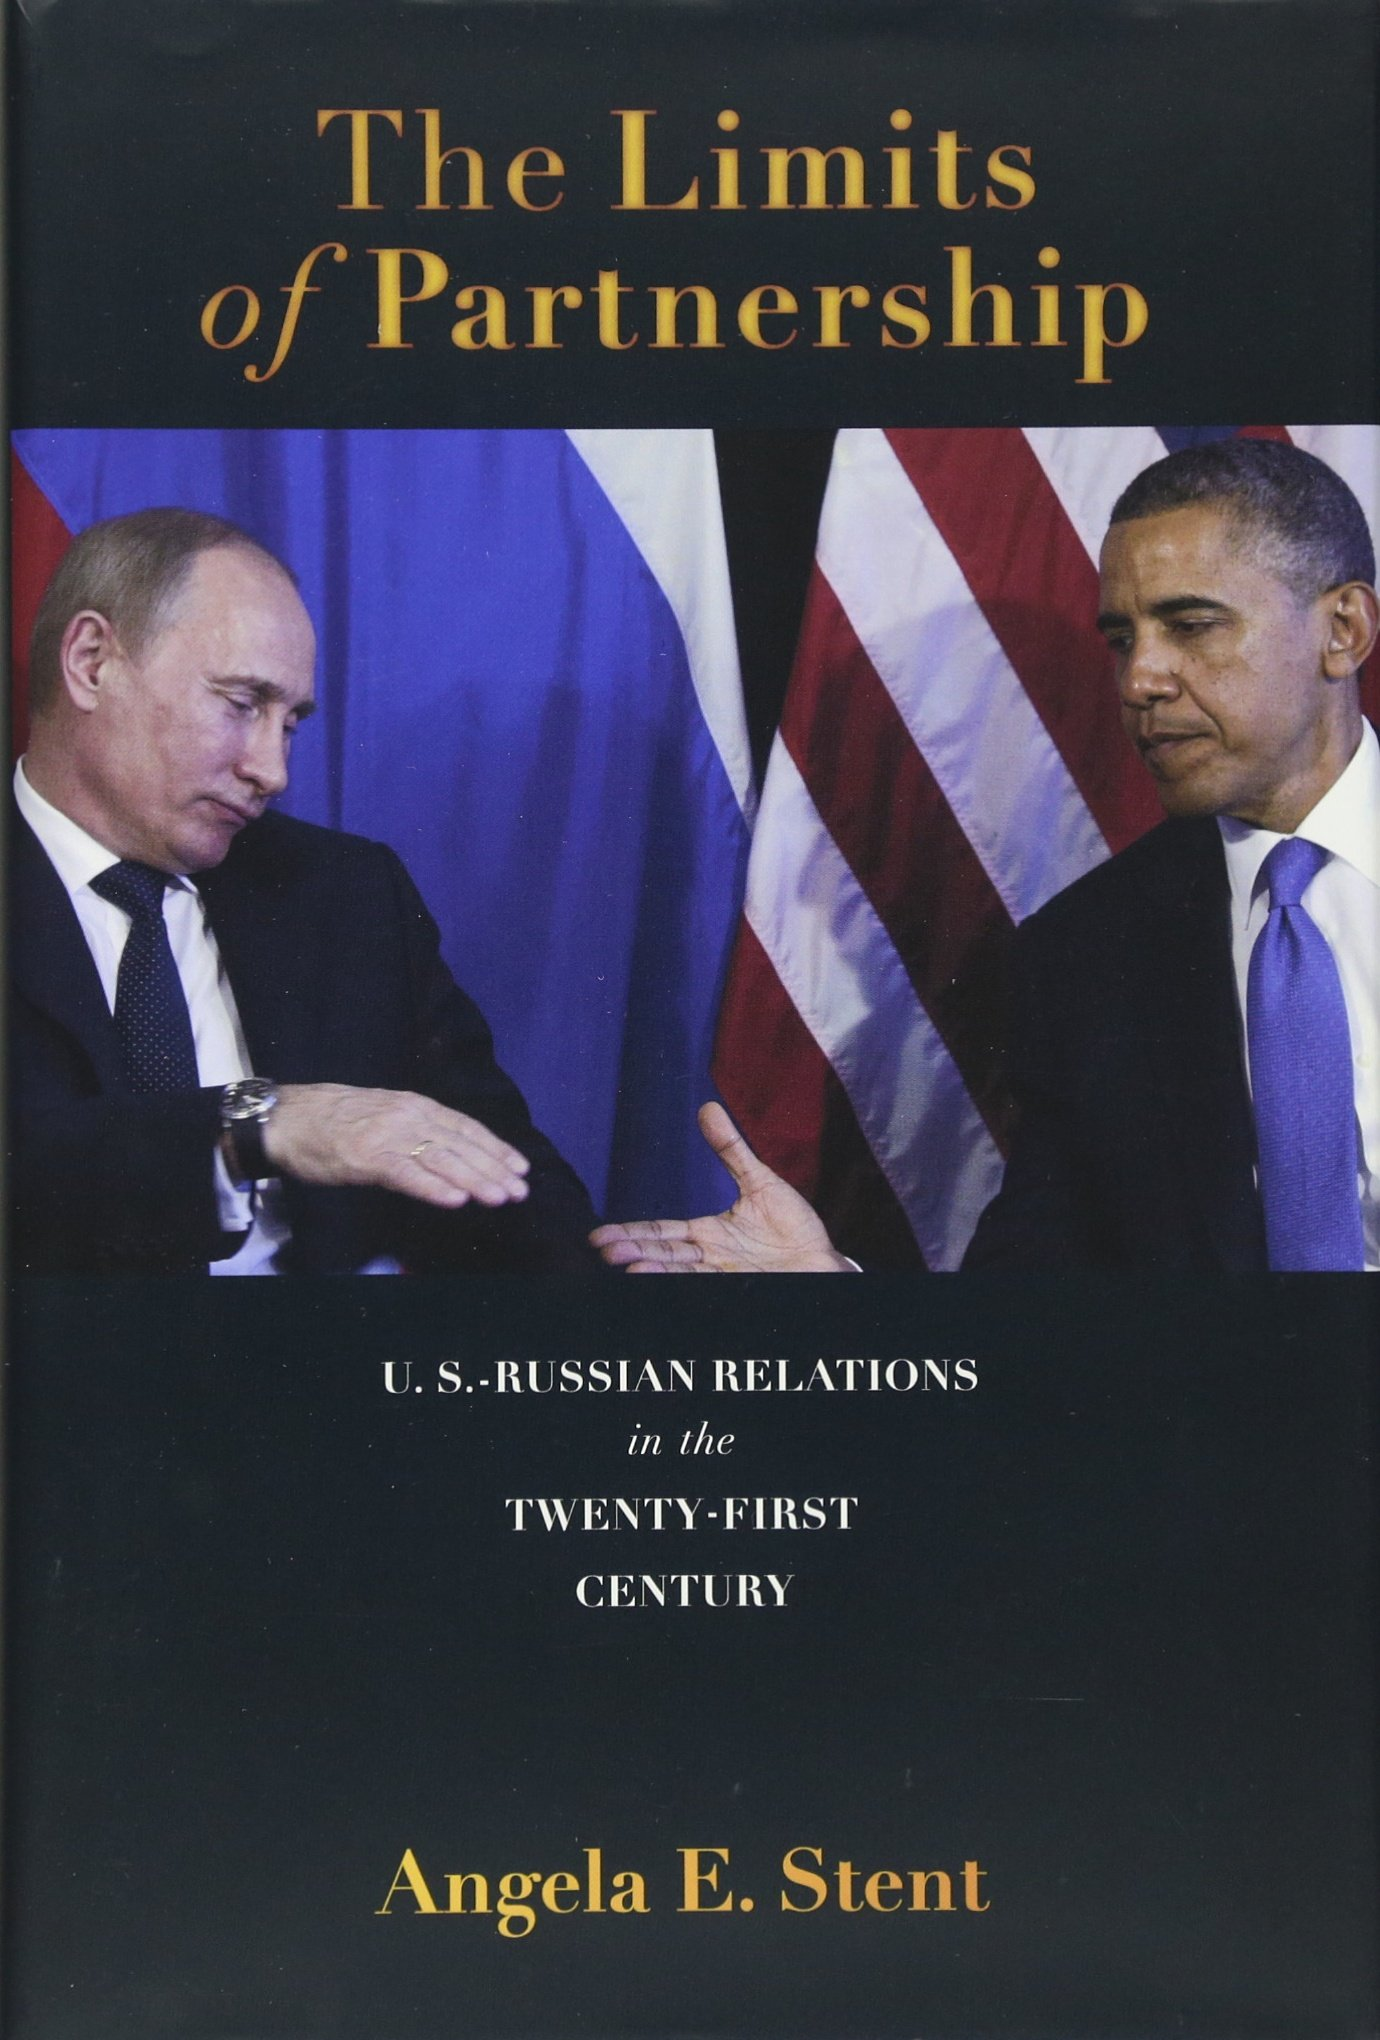 The Limits of Partnership: U.S.-Russian Relations in the Twenty-First Century PDF